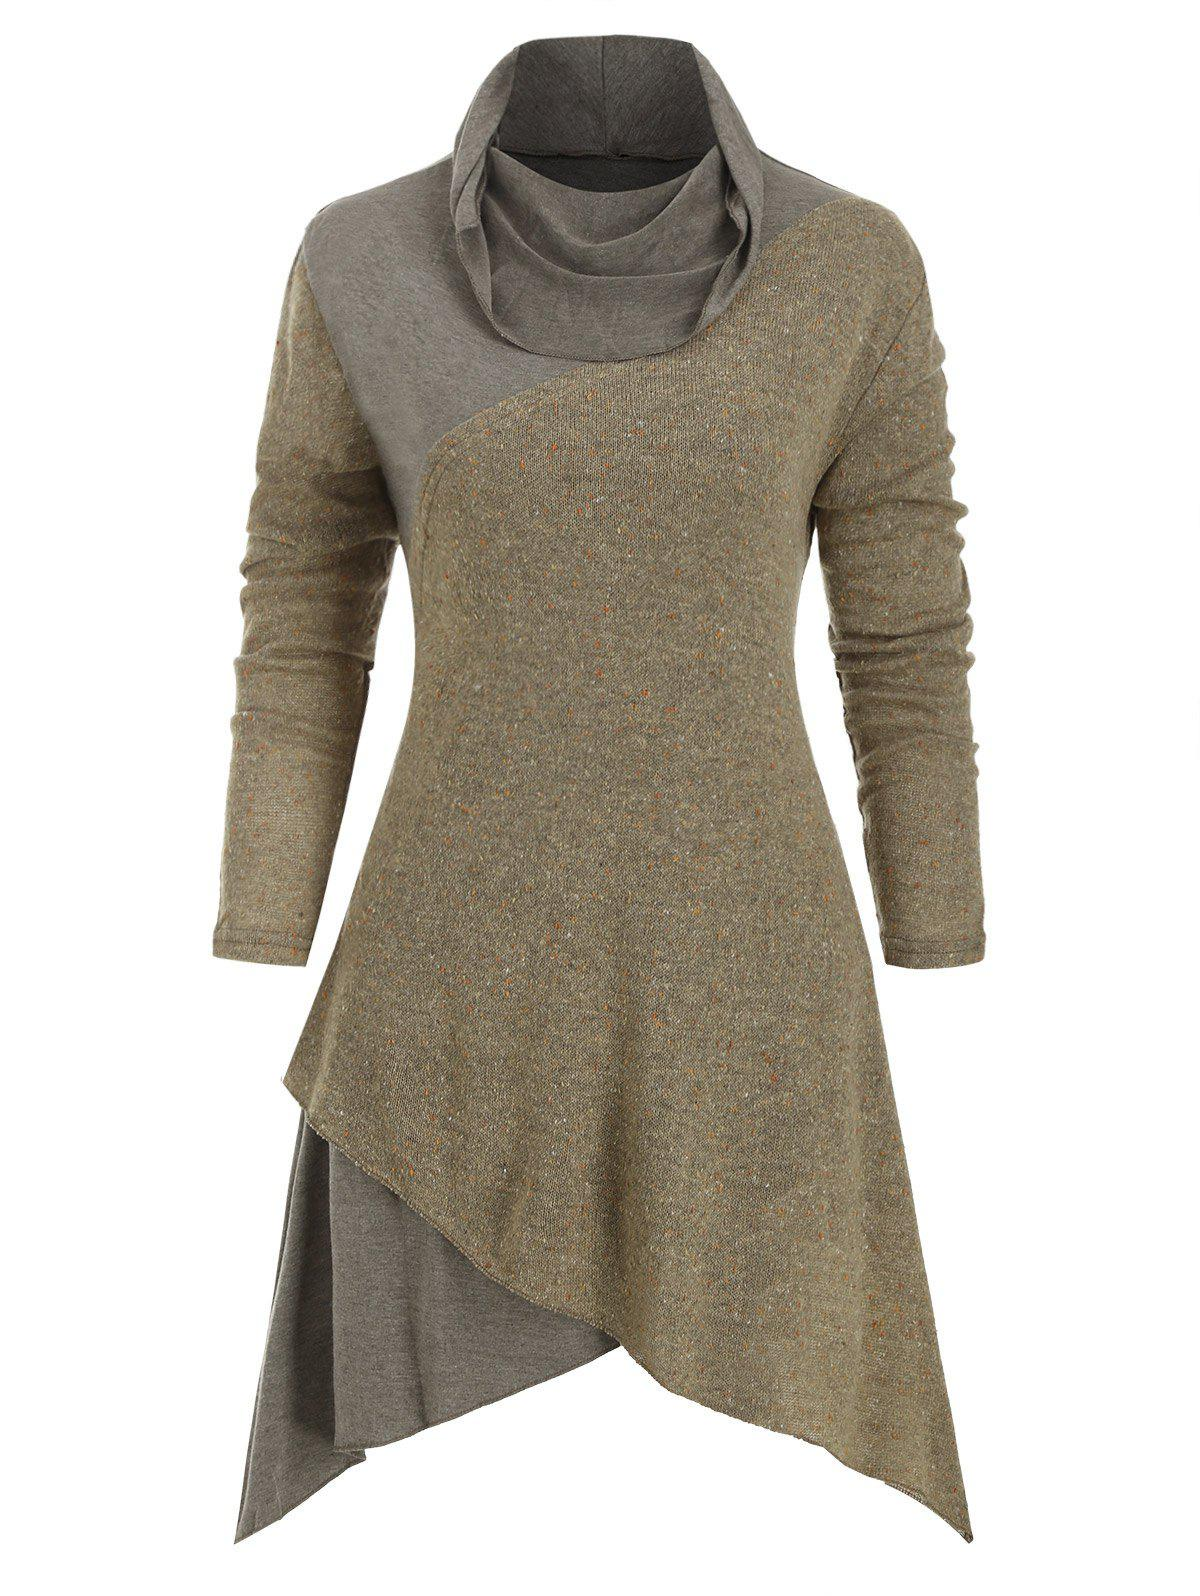 Cowl Neck Confetti Asymmetrical Sweater - KHAKI 2XL